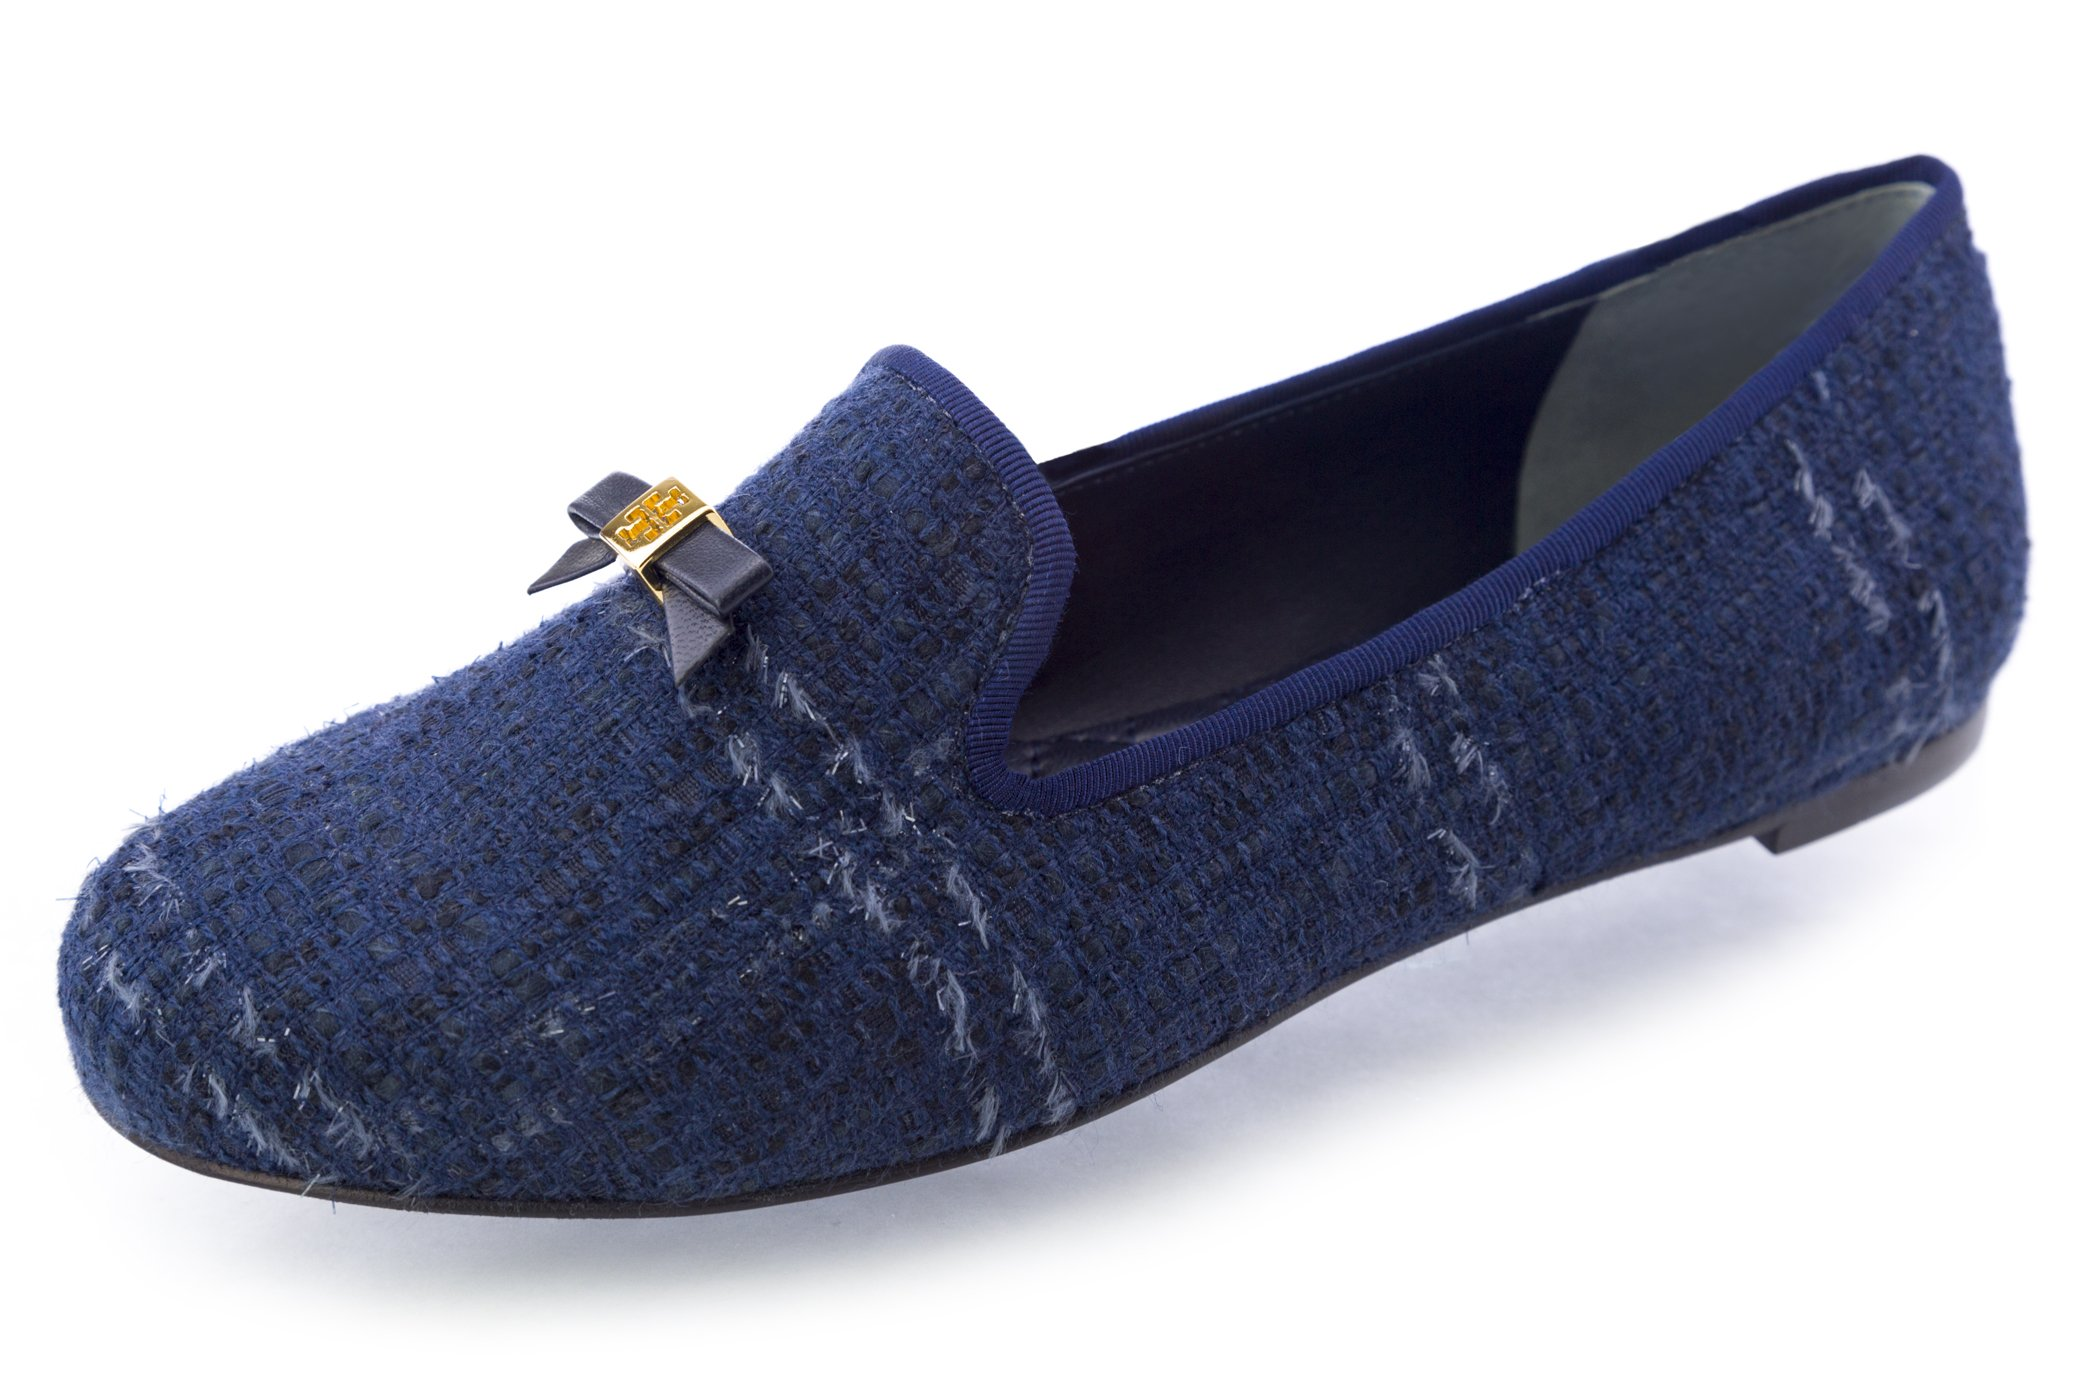 Tory Burch Chandra Loafer Shoes TB Logo (8.5, Navy Combo)